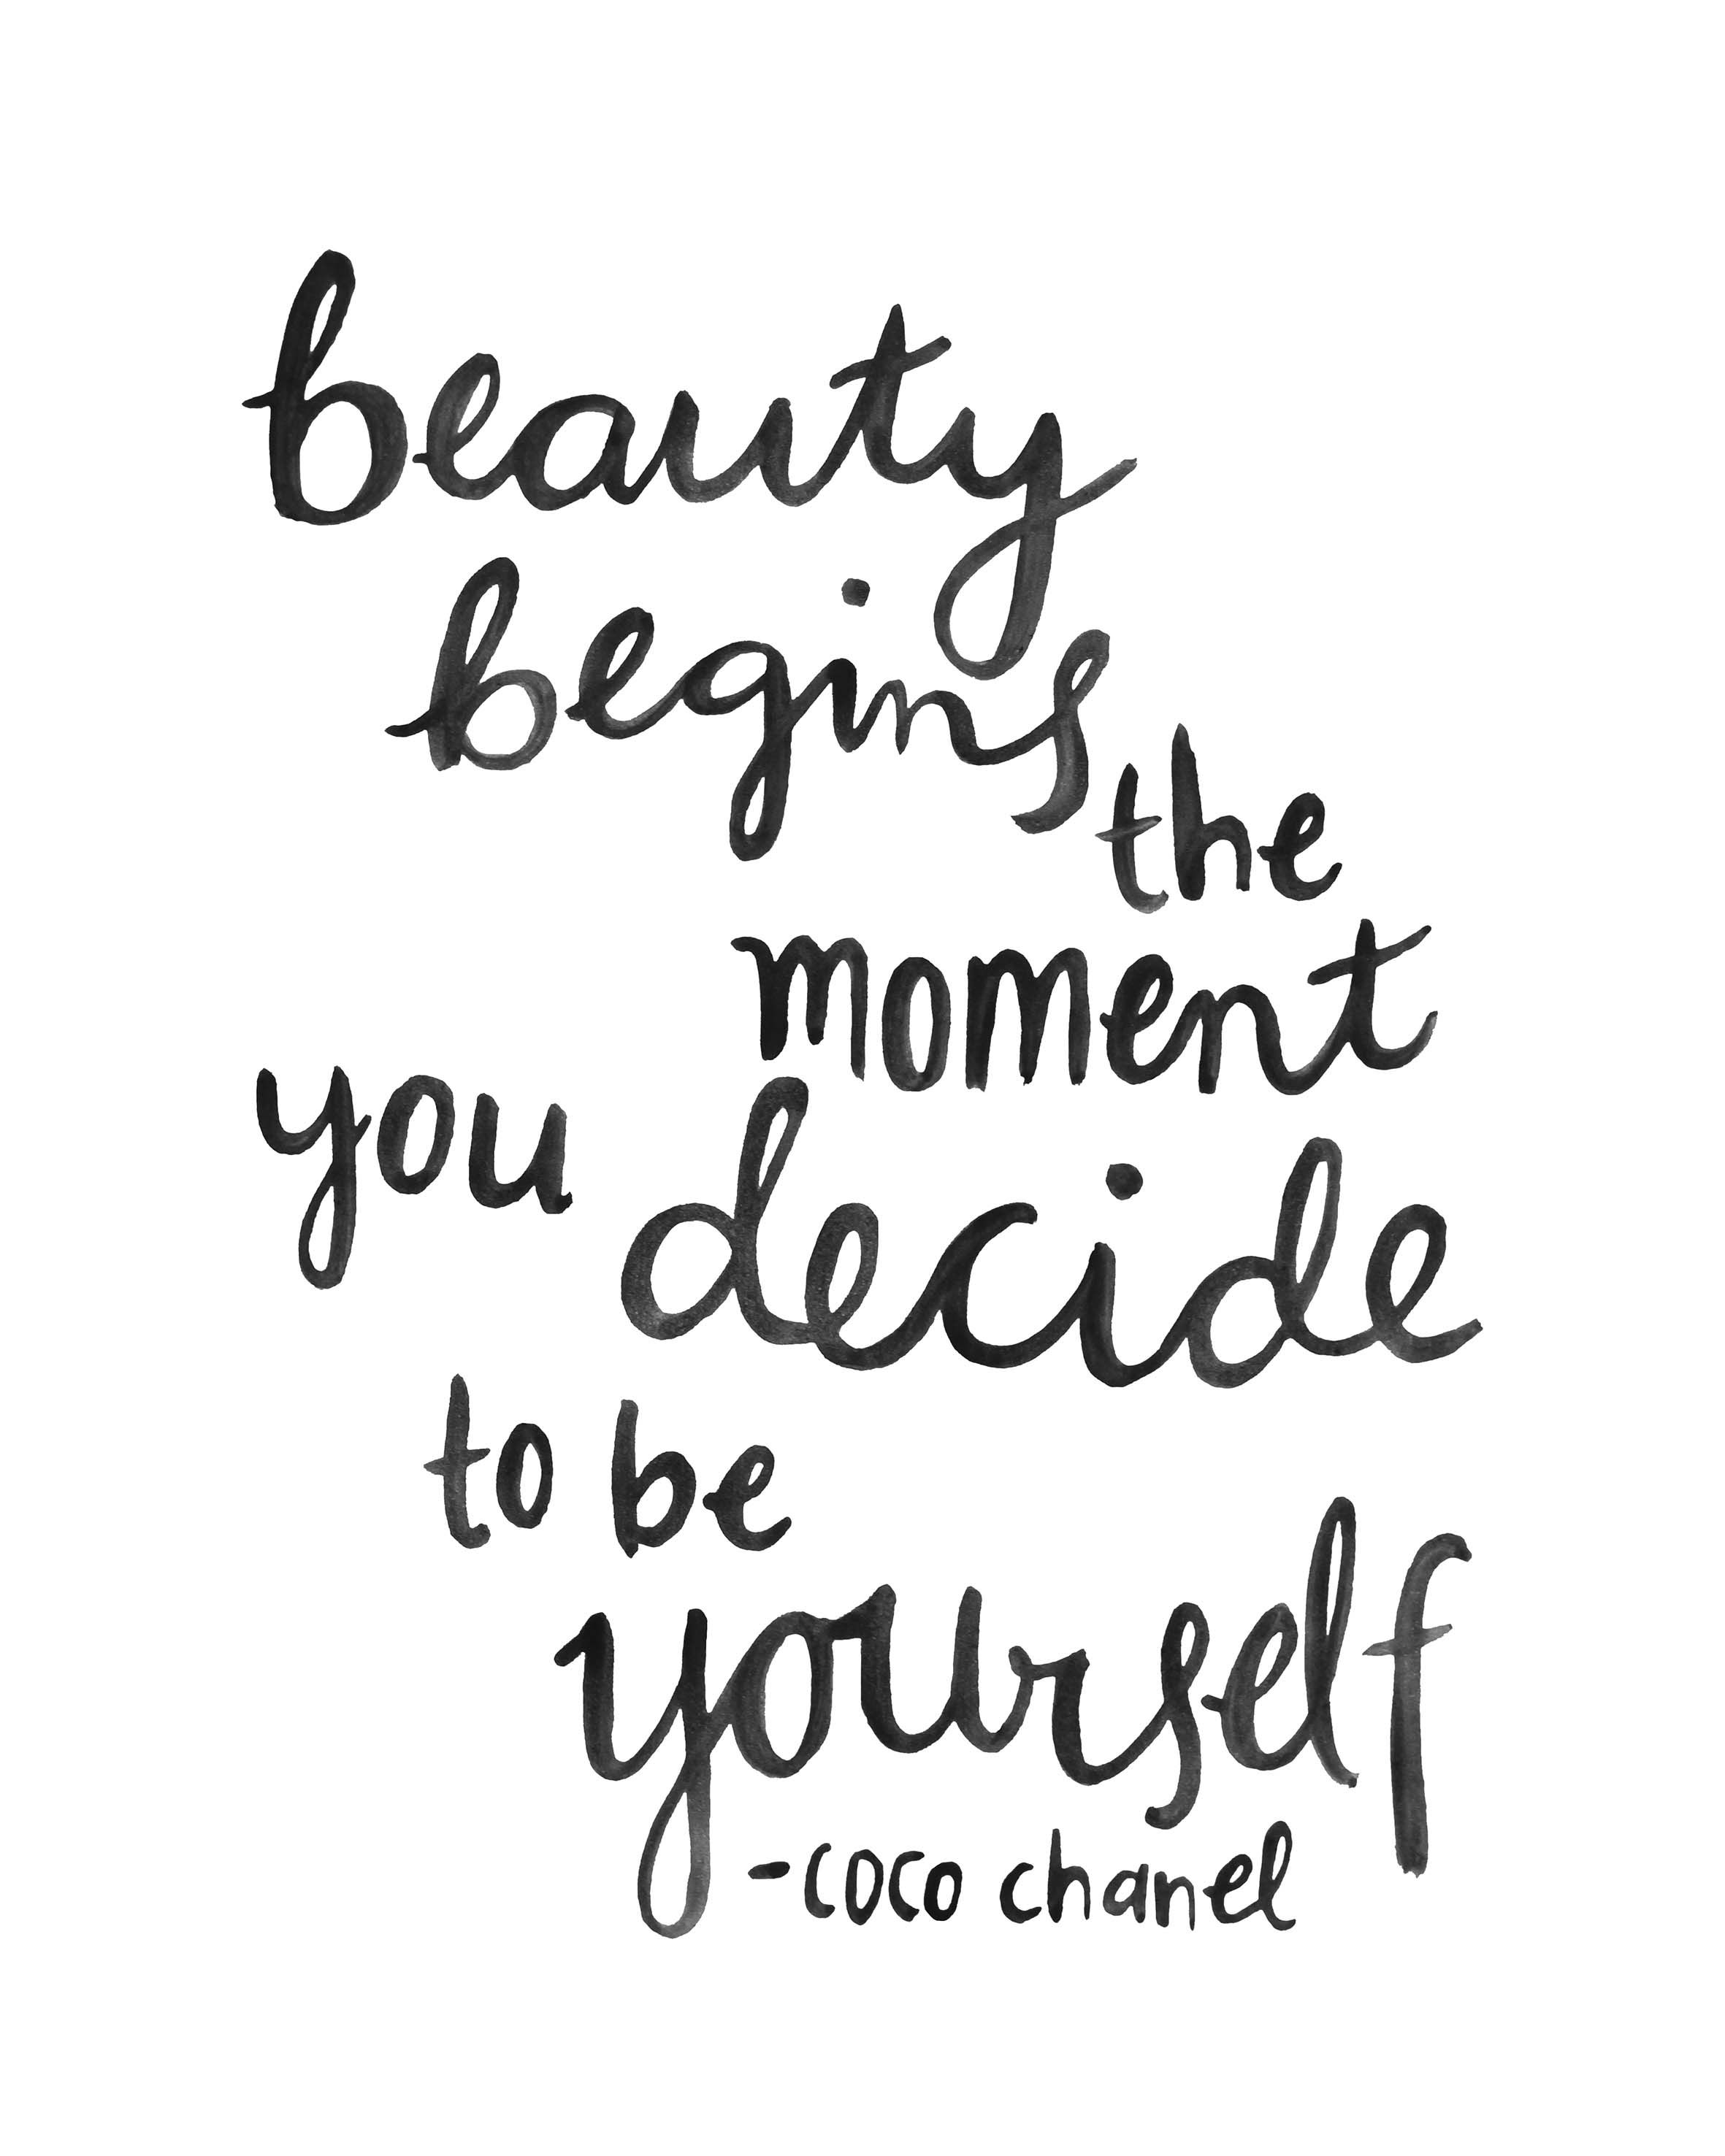 Art Quotes Tumblr Coco Chanel Quotes Hand Lettering Coco Chanel Quotes Tumblr